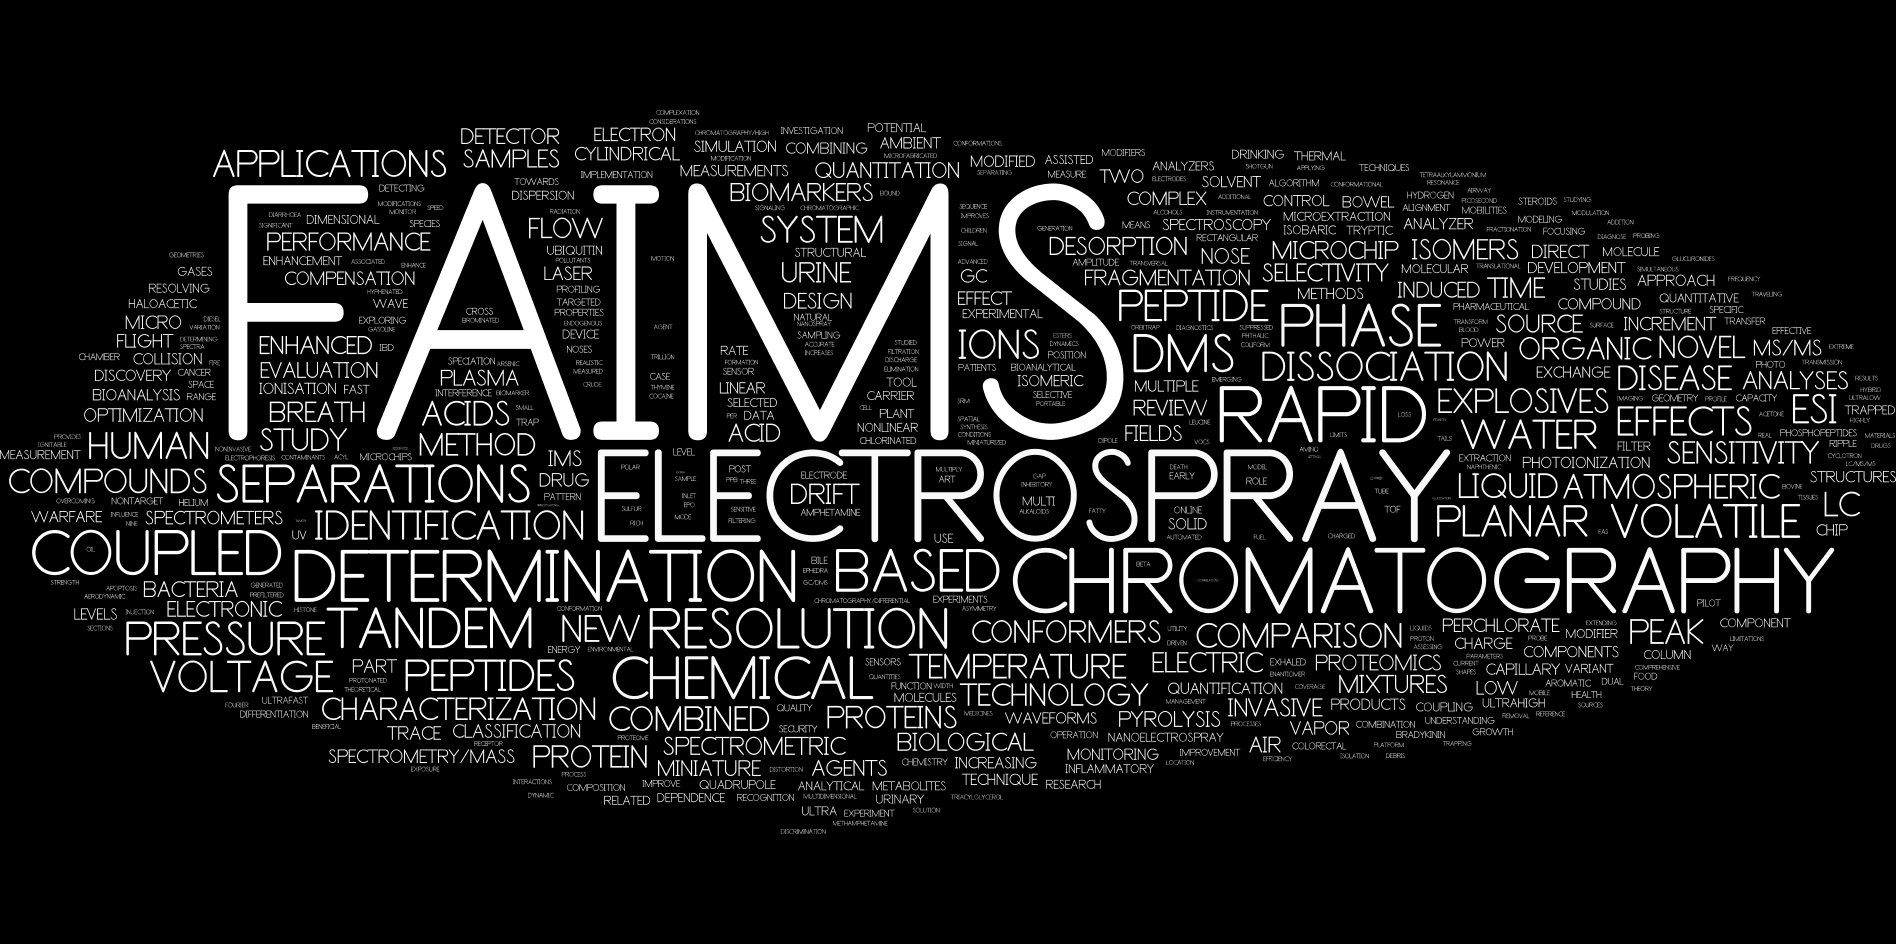 A FAIMS wordle